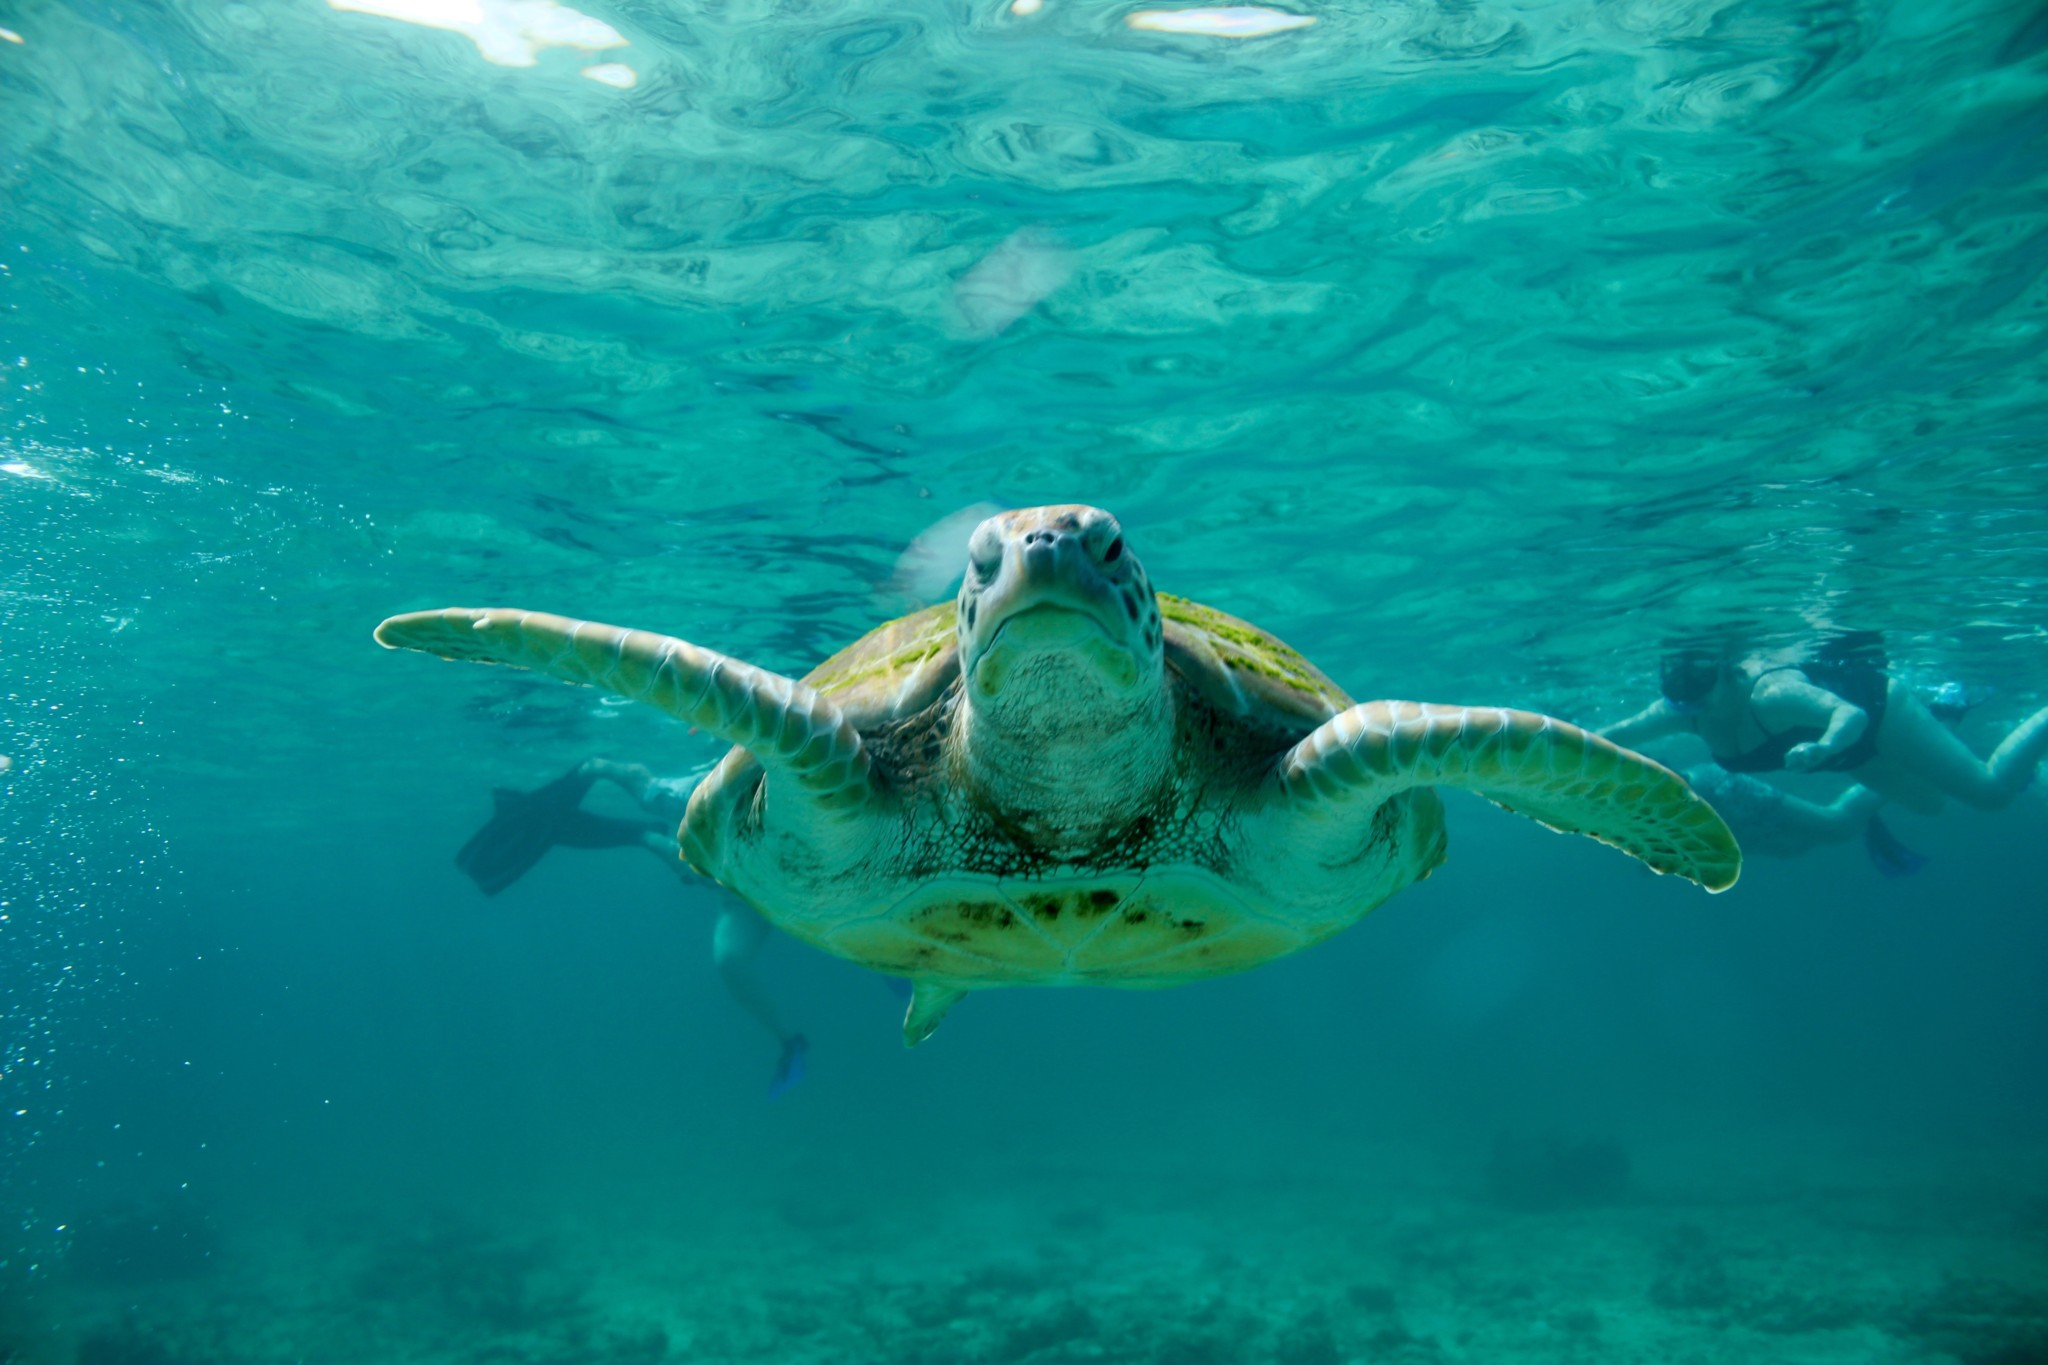 Swim with Sea Turtles - Playa Del Carmen